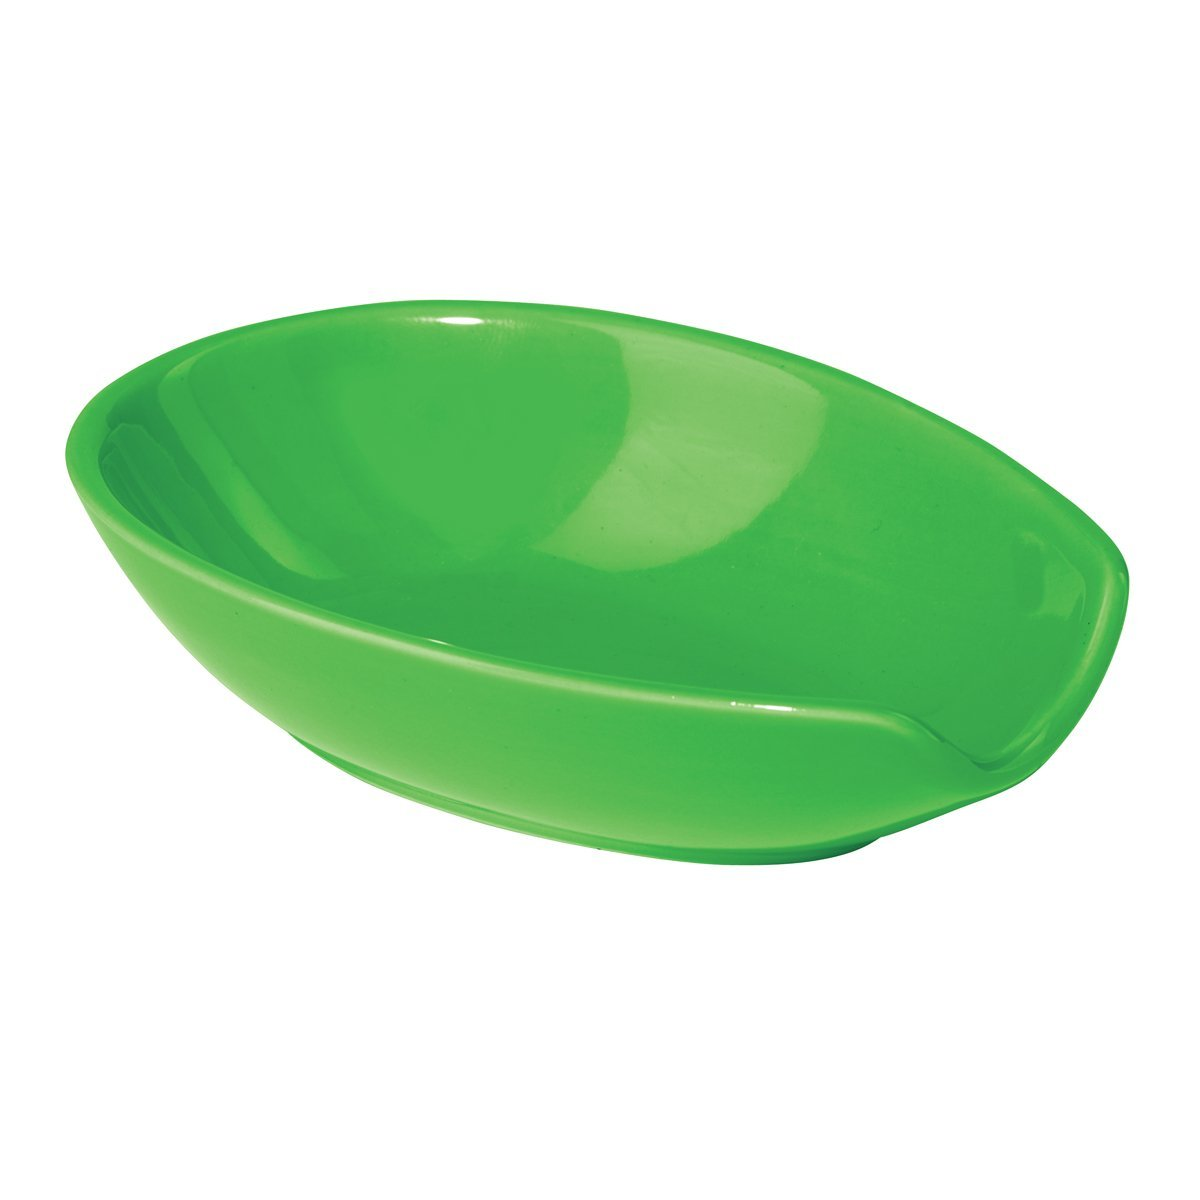 OGGI Ceramic Spoon Rest Green